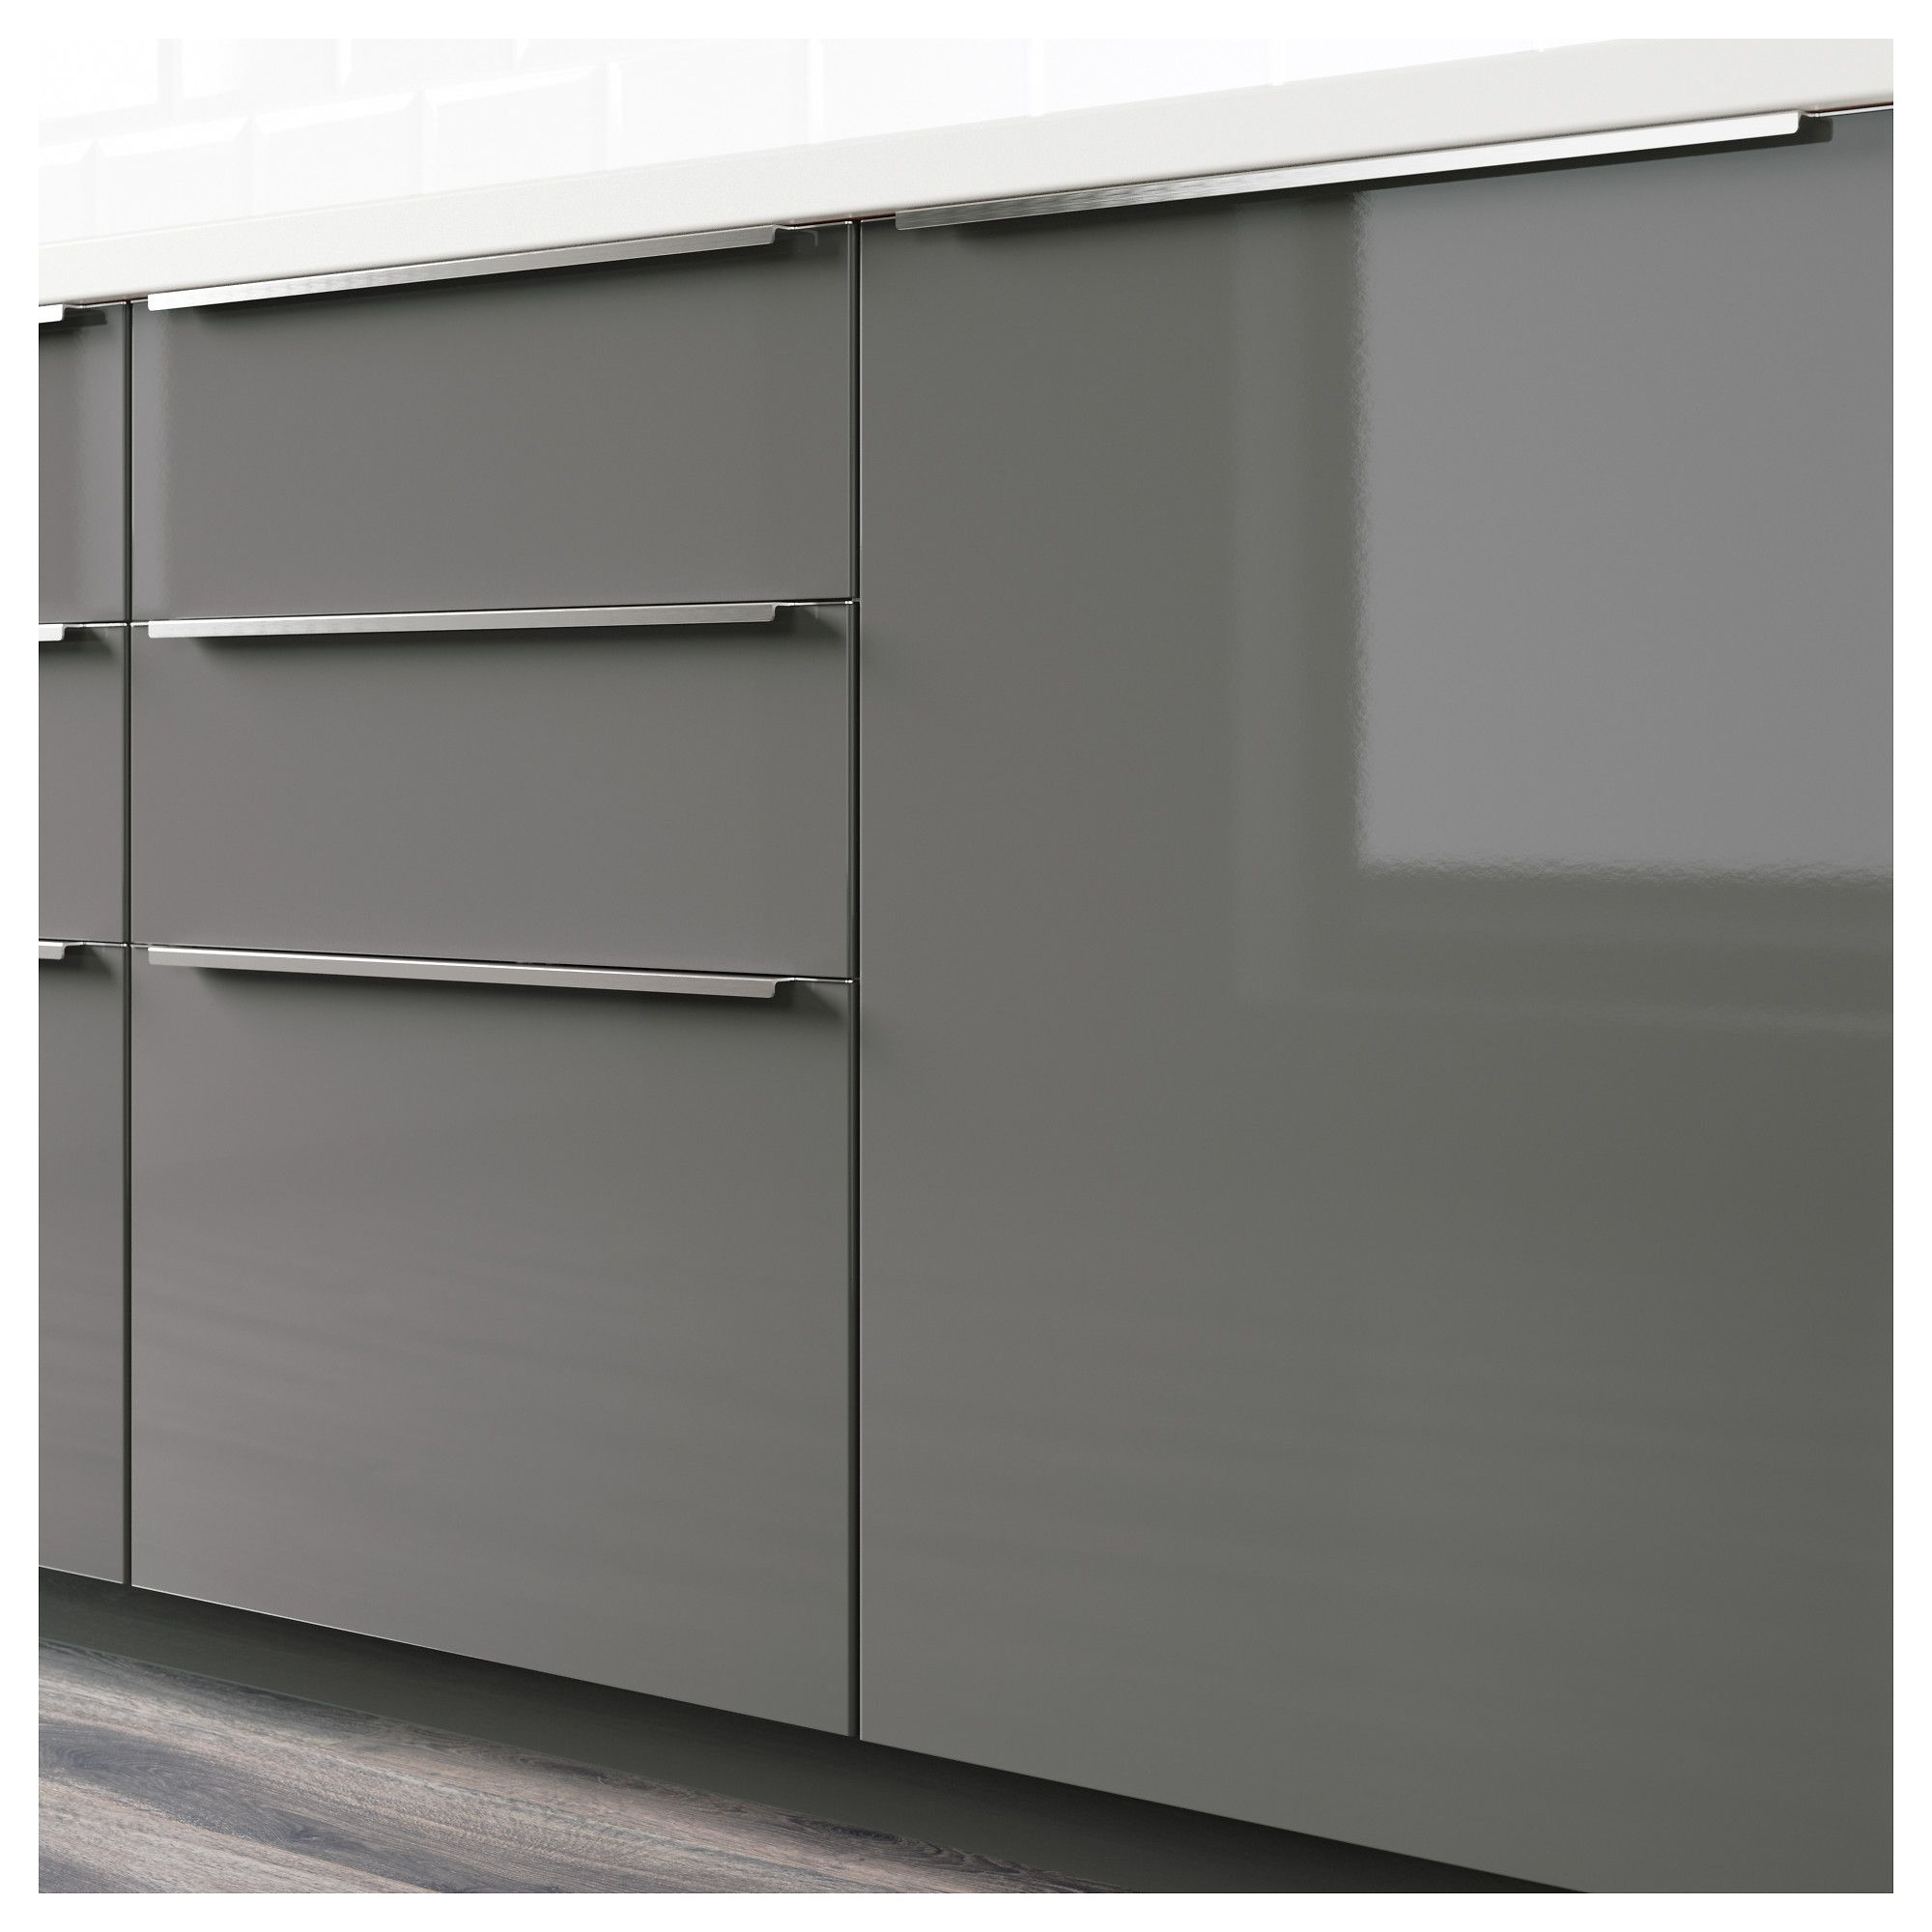 ikea ringhult door 25 year guarantee. read about the terms in the